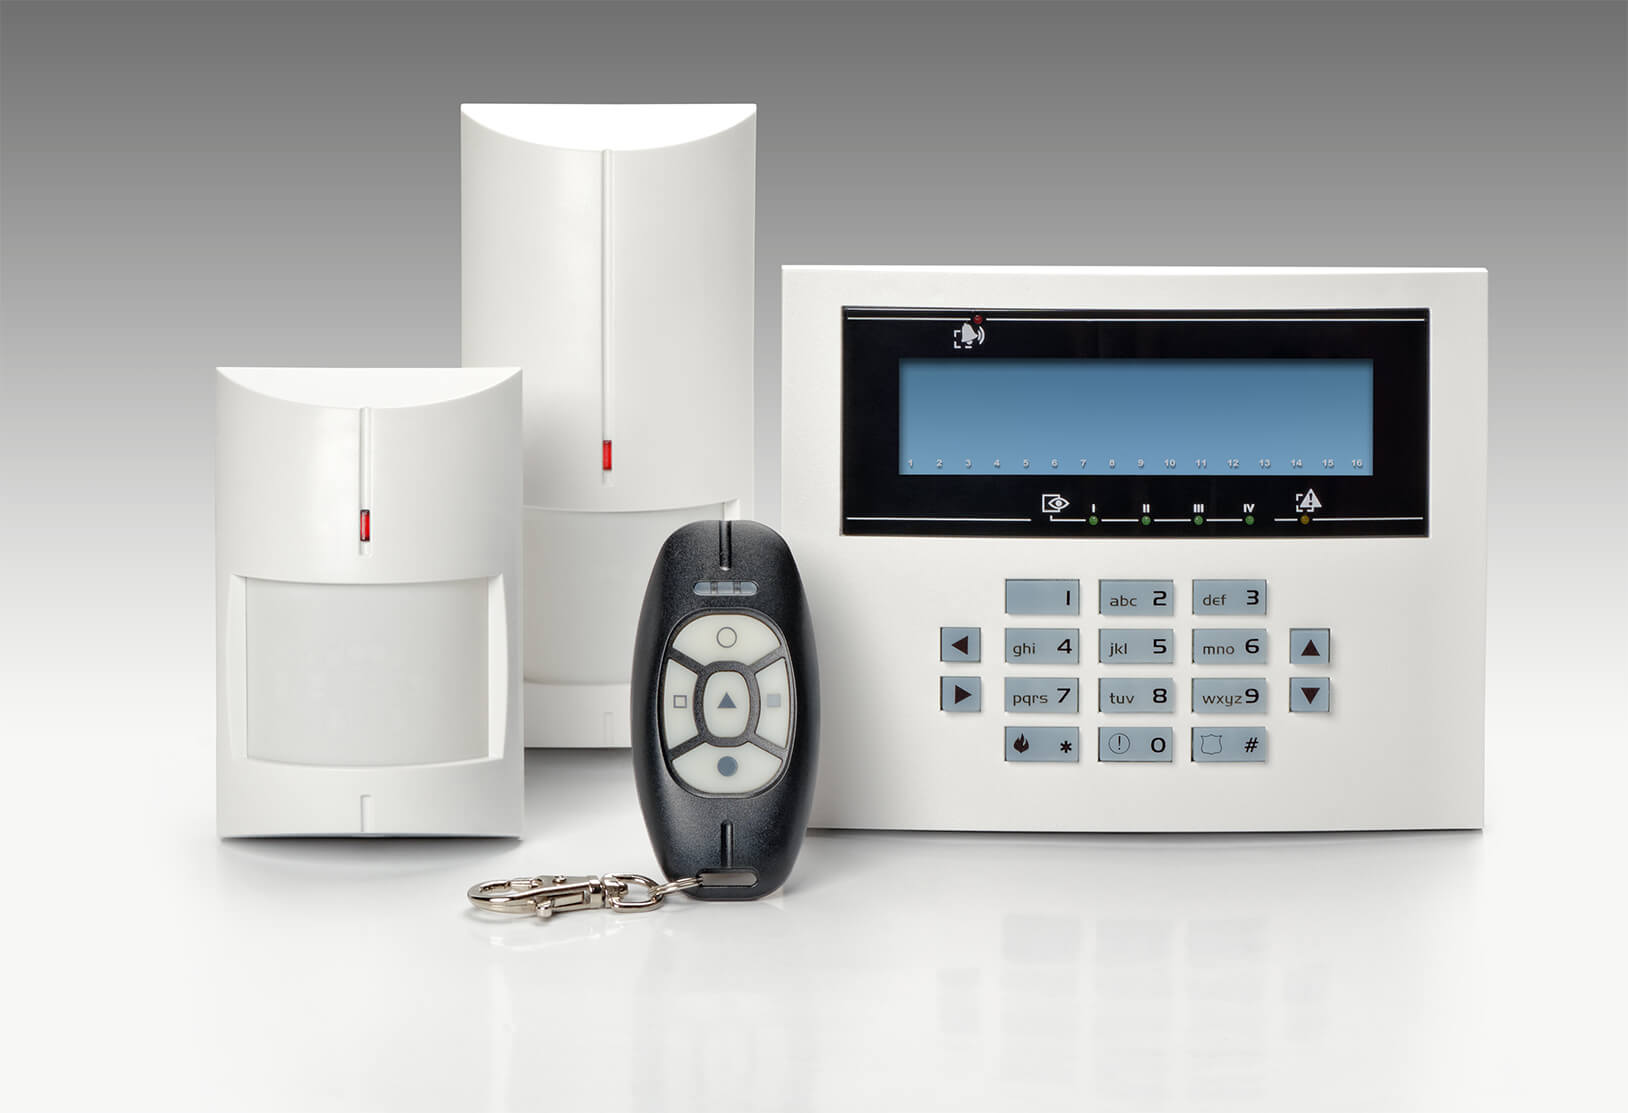 Business & Residential NSI / NACOSS Approved Burglar Alarms In South Kensington SW7 - Local South Kensington SW7 security company.Call 02078872244 - Dedicated to Safety & Security. Companies, shops and homes ..